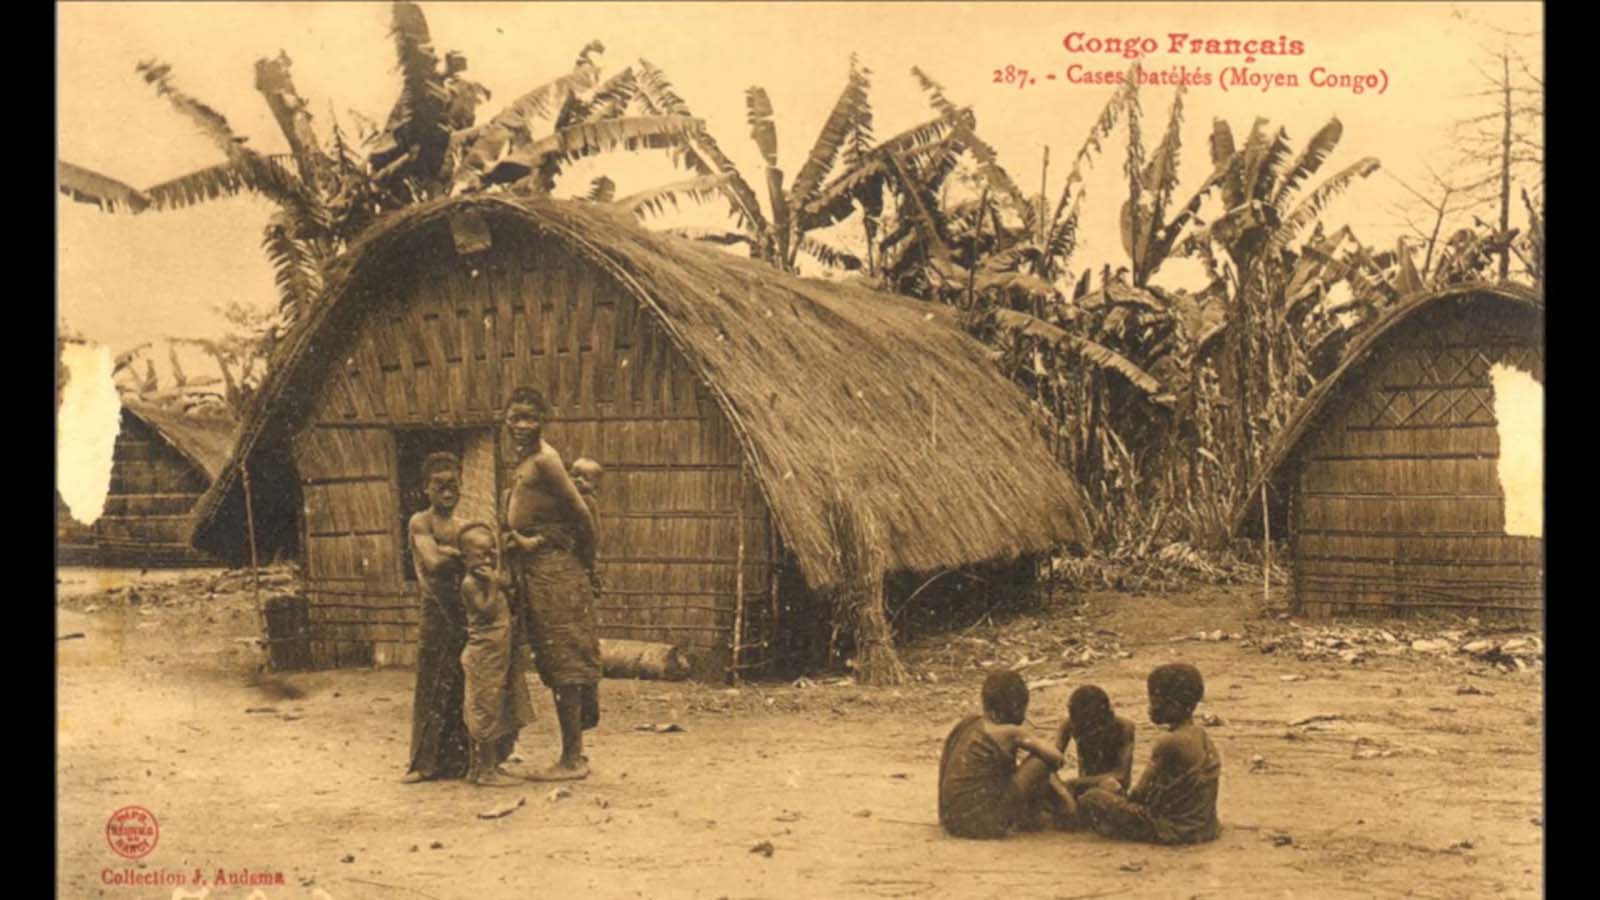 Postcard from the French Congo.